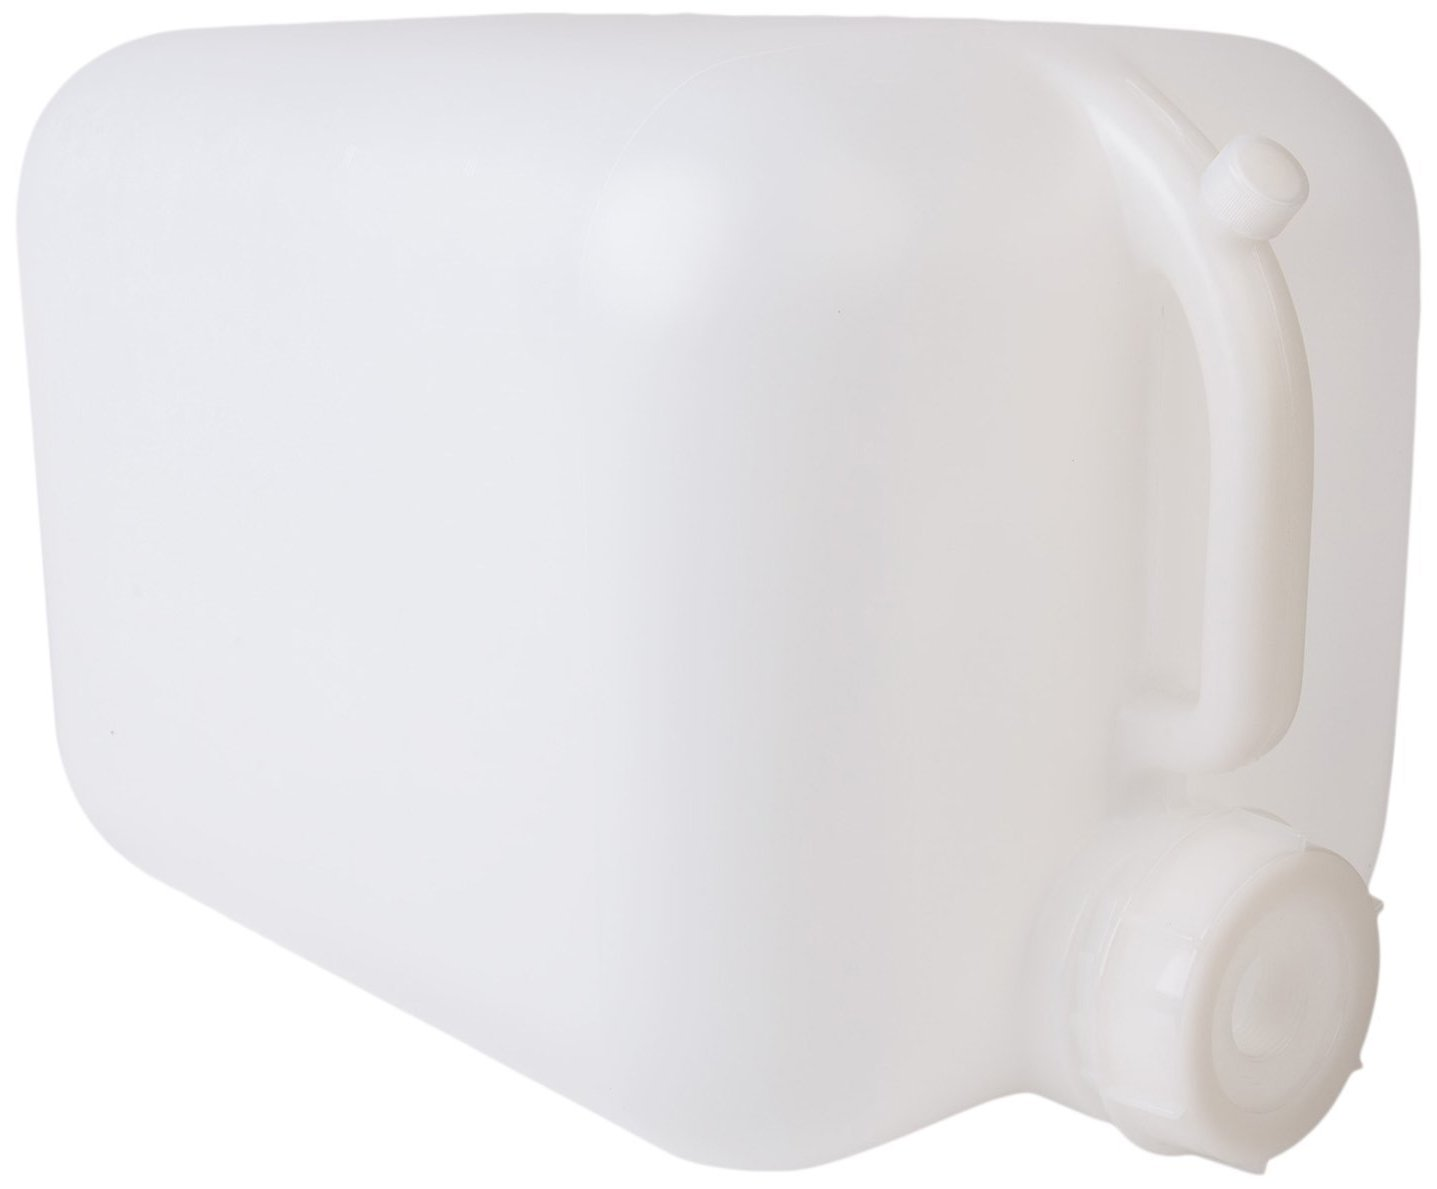 Hudson Exchange 5 Gallon Hedpak Container with Cap, HDPE, Natural